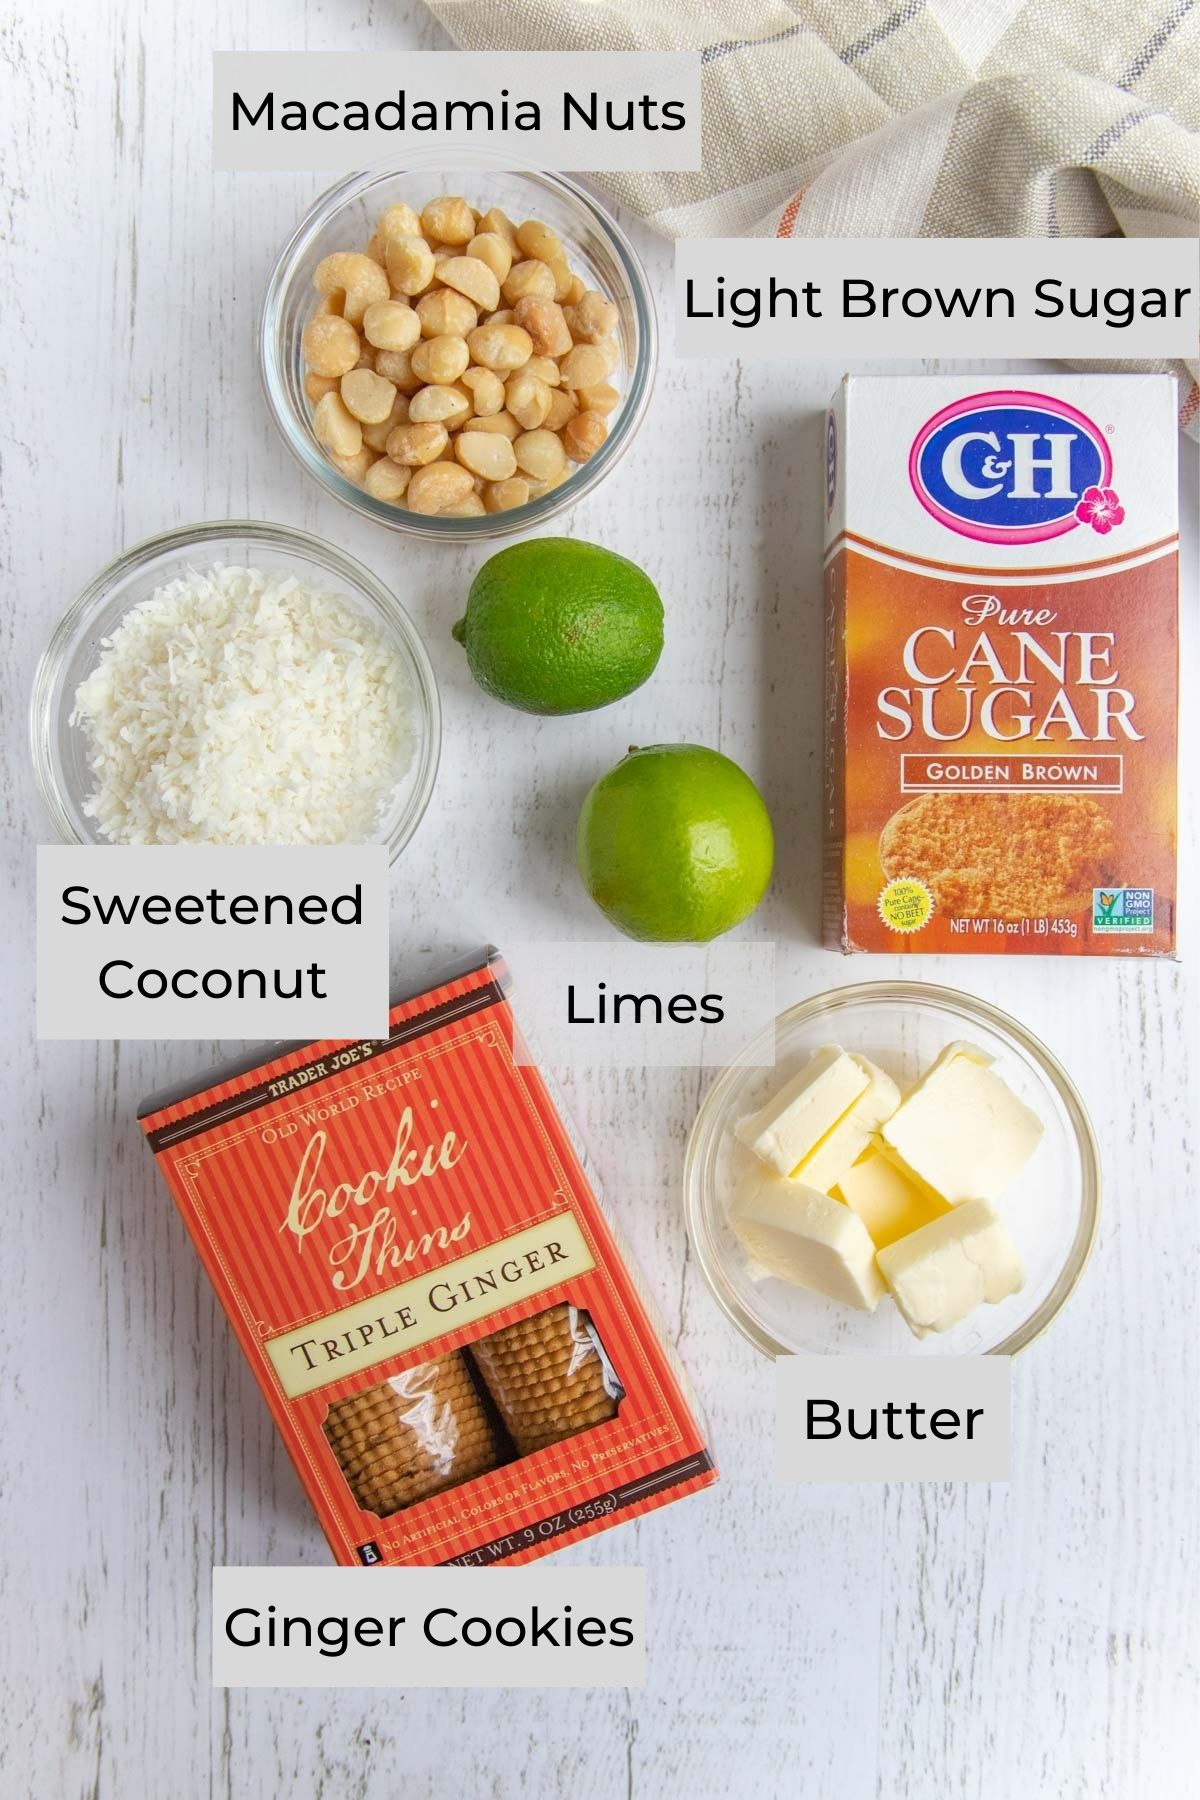 Ginger Cookie Crust Ingredients - Ginger Cookies, Sweetened Coconut, Nuts, Limes, Light Brown Sugar, Butter